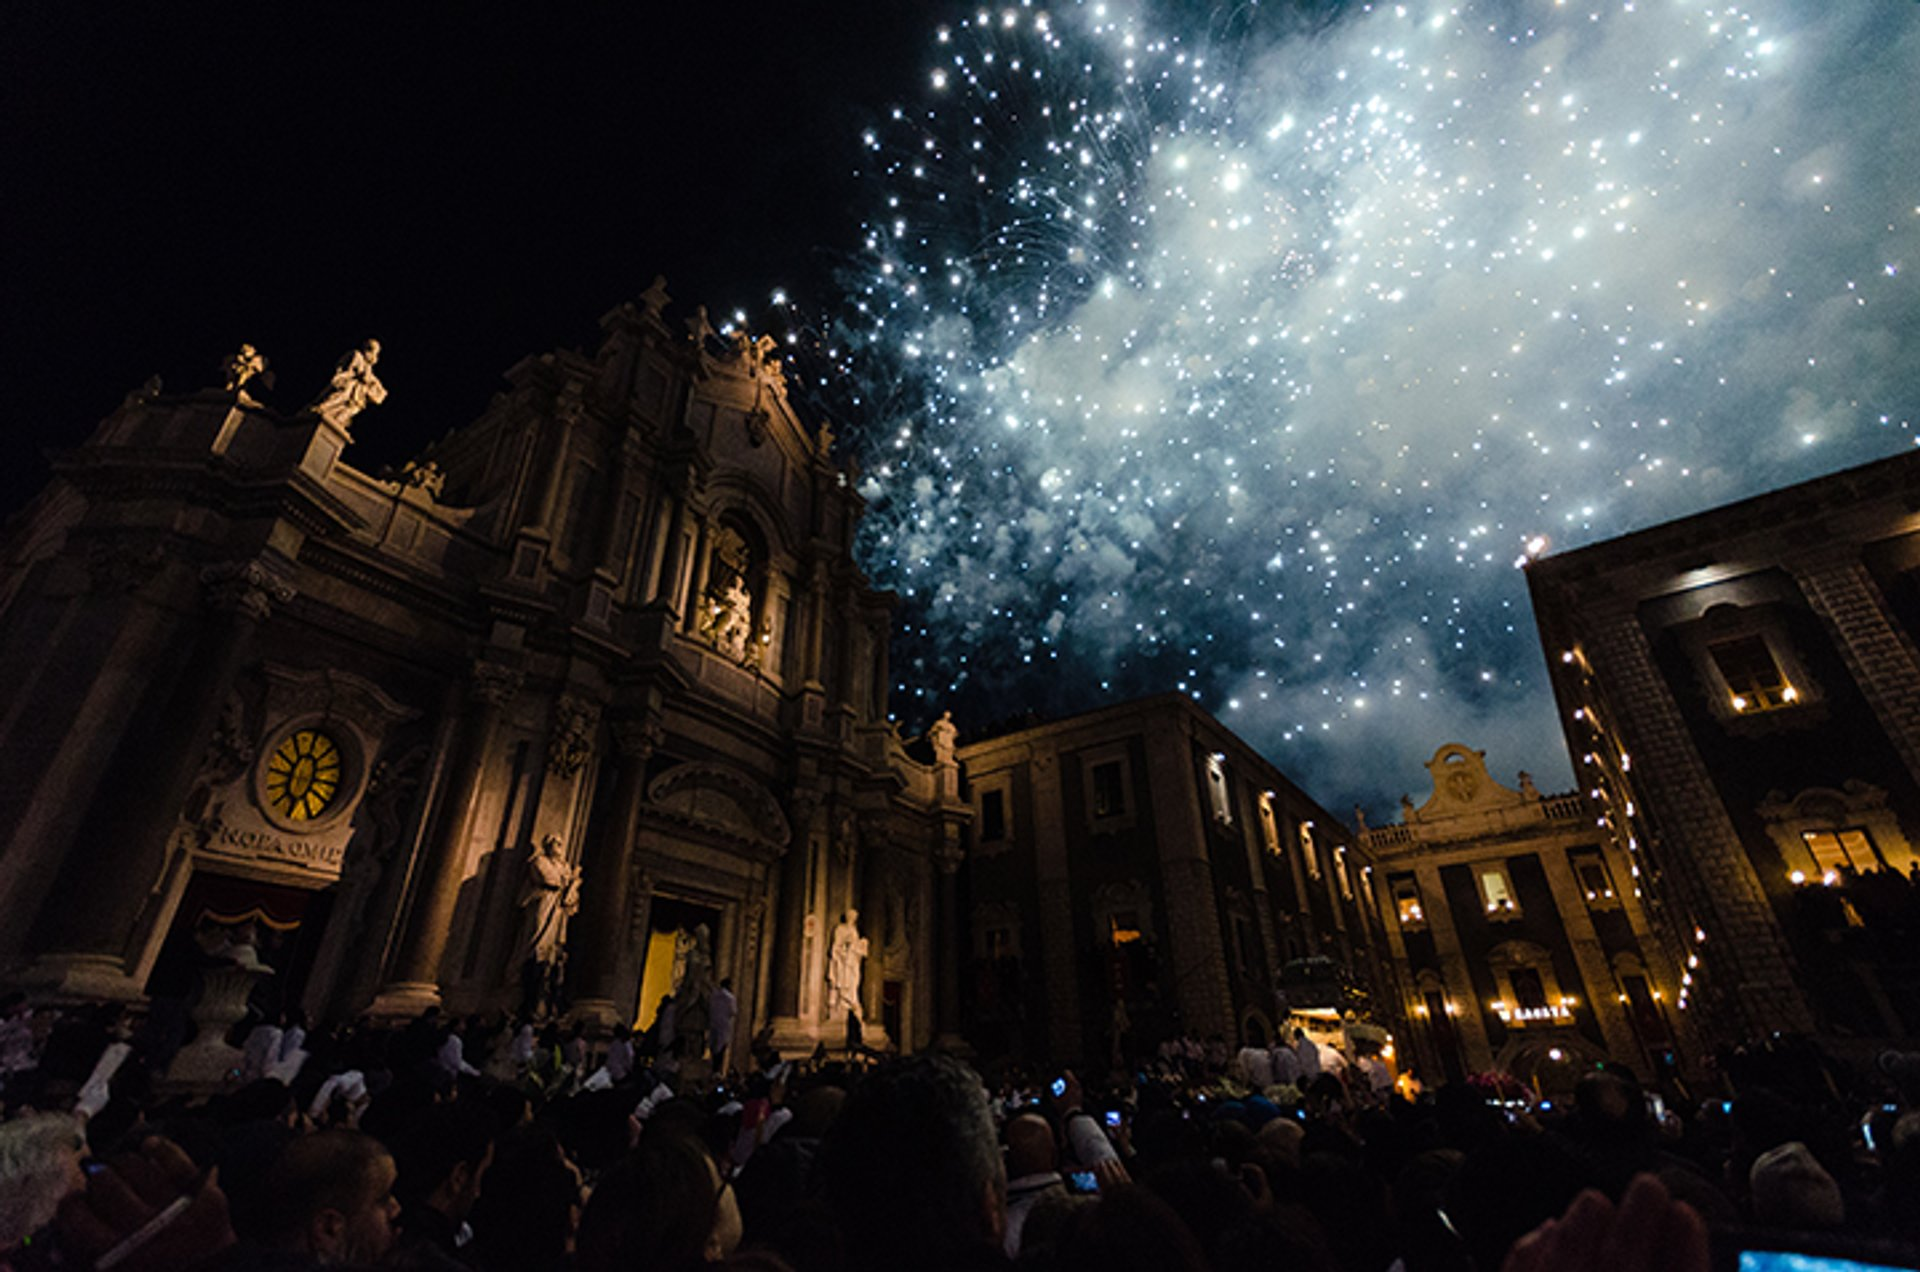 Saint Agata Festival in Sicily - Best Season 2020